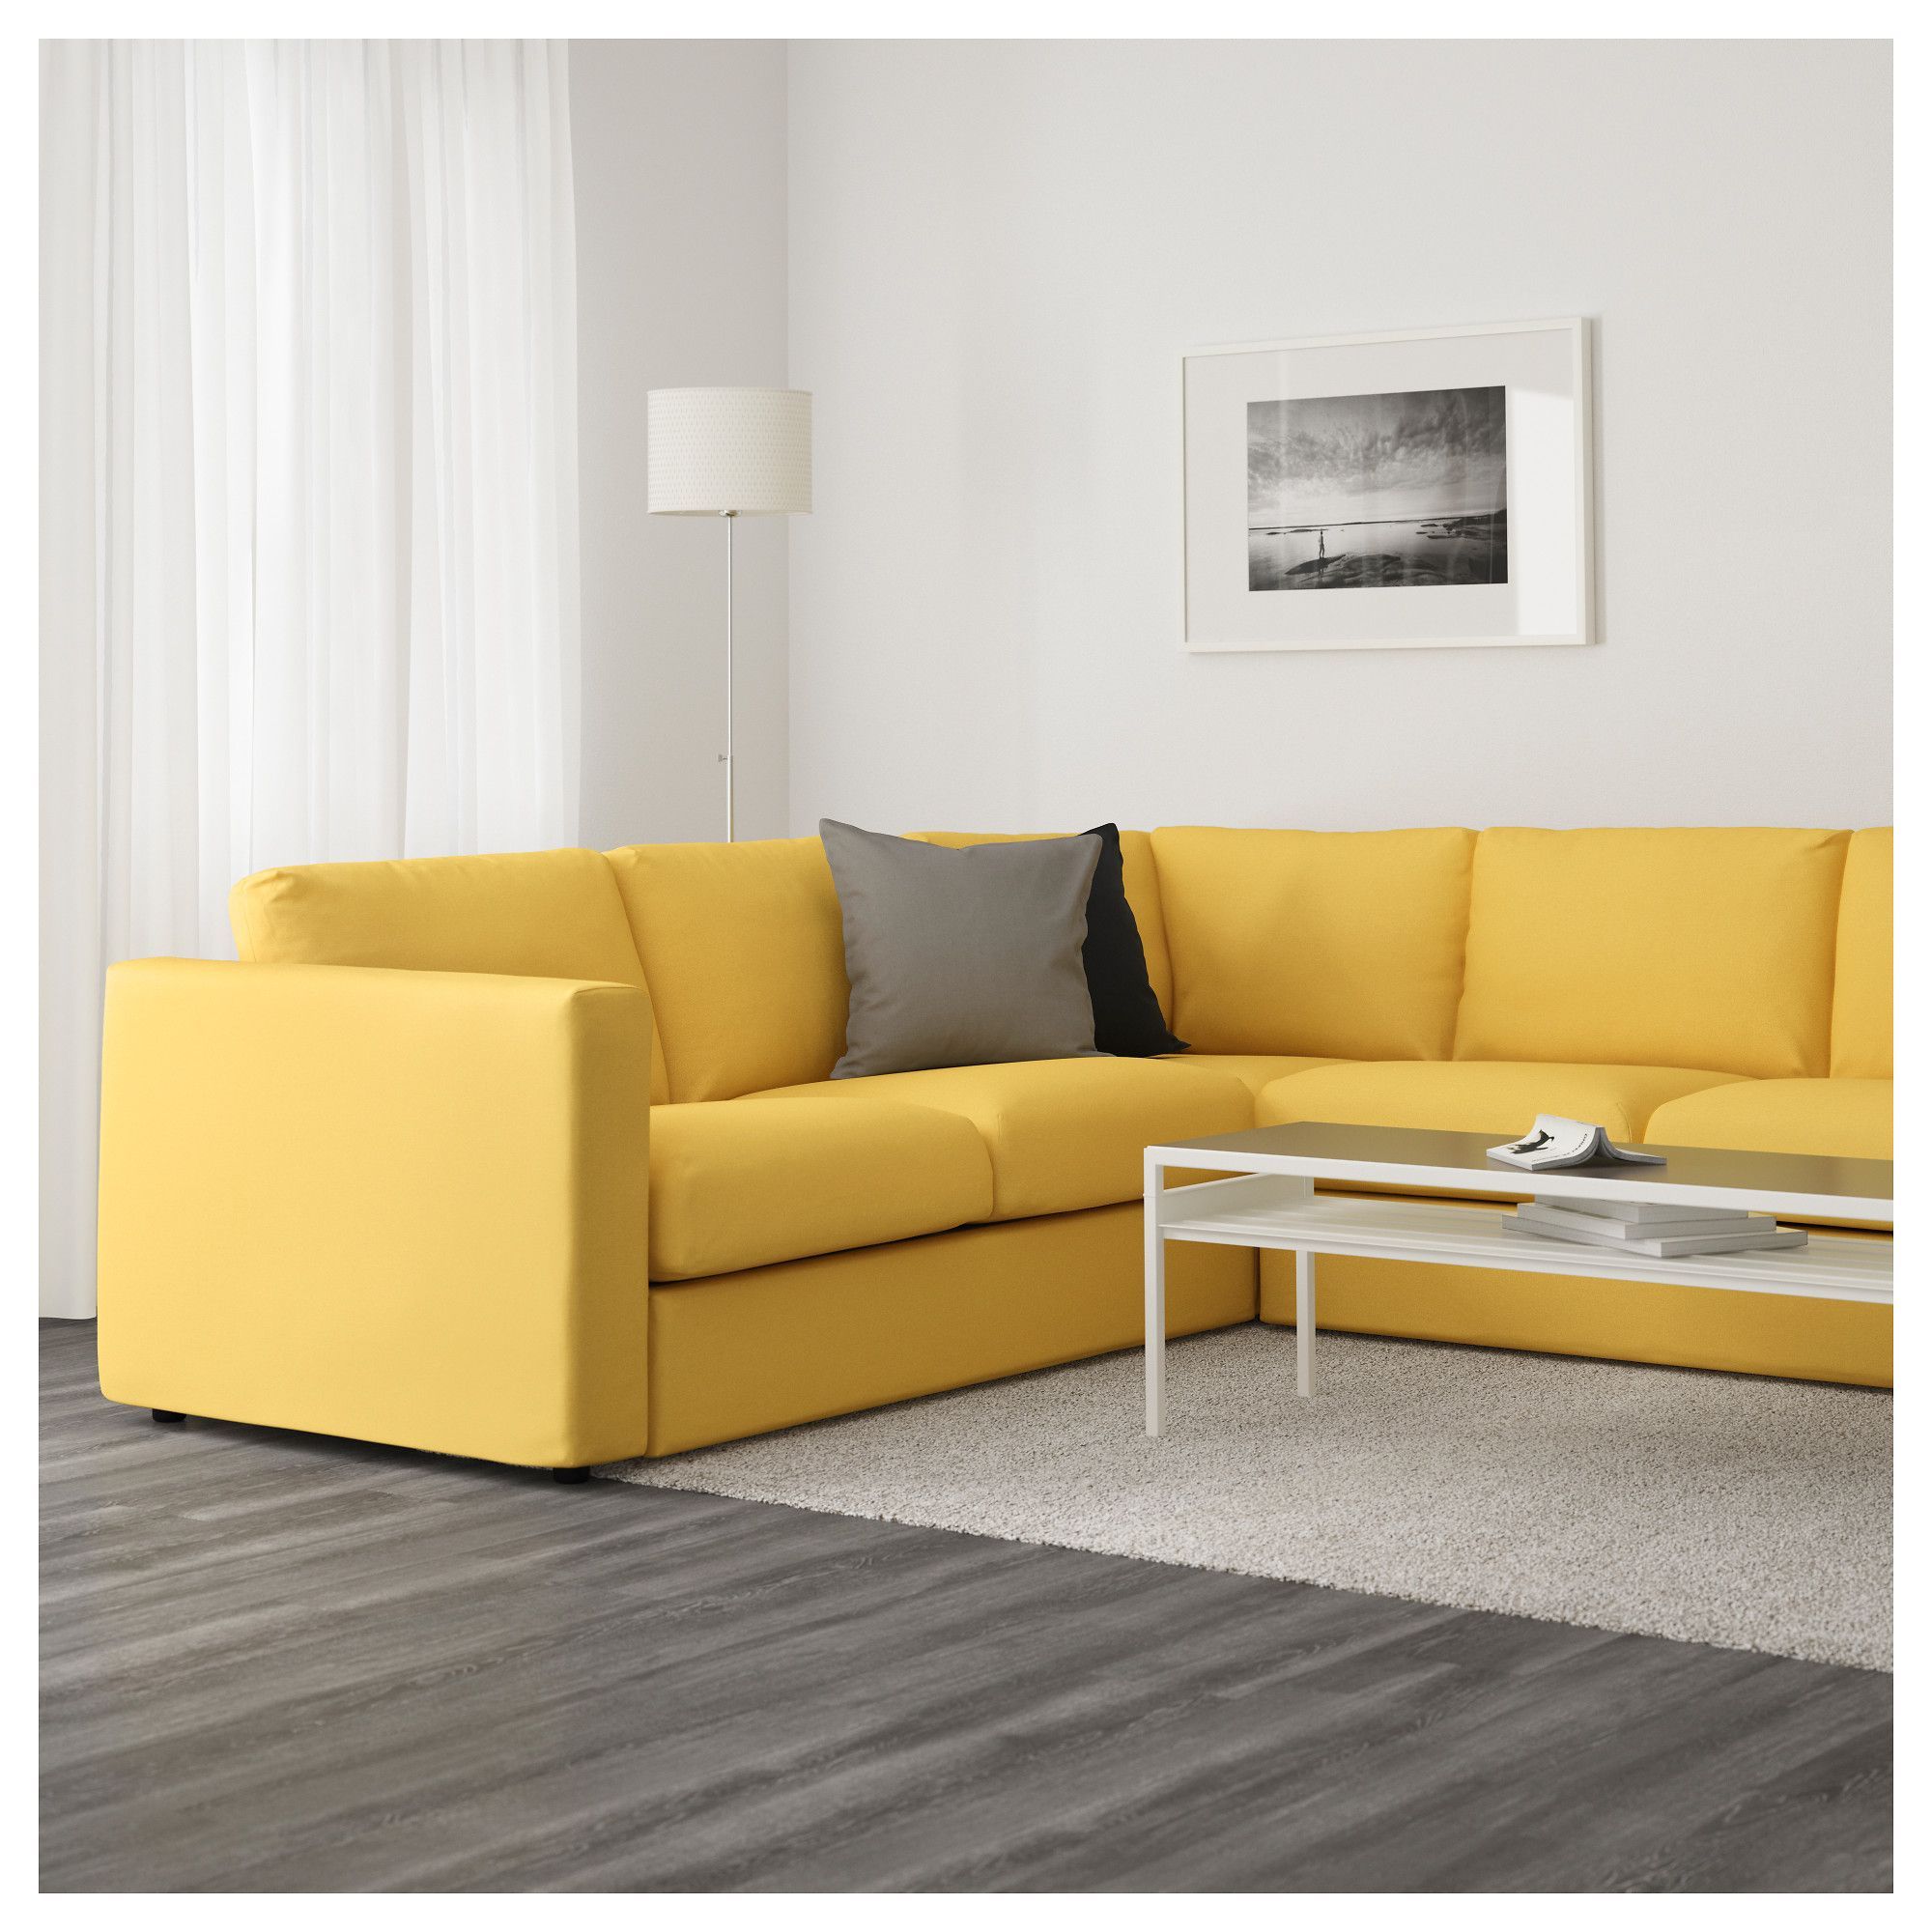 Small Sectional Sofa Ikea Ikea Vimle Sectional 5 Seat Corner Orrsta Golden Yellow